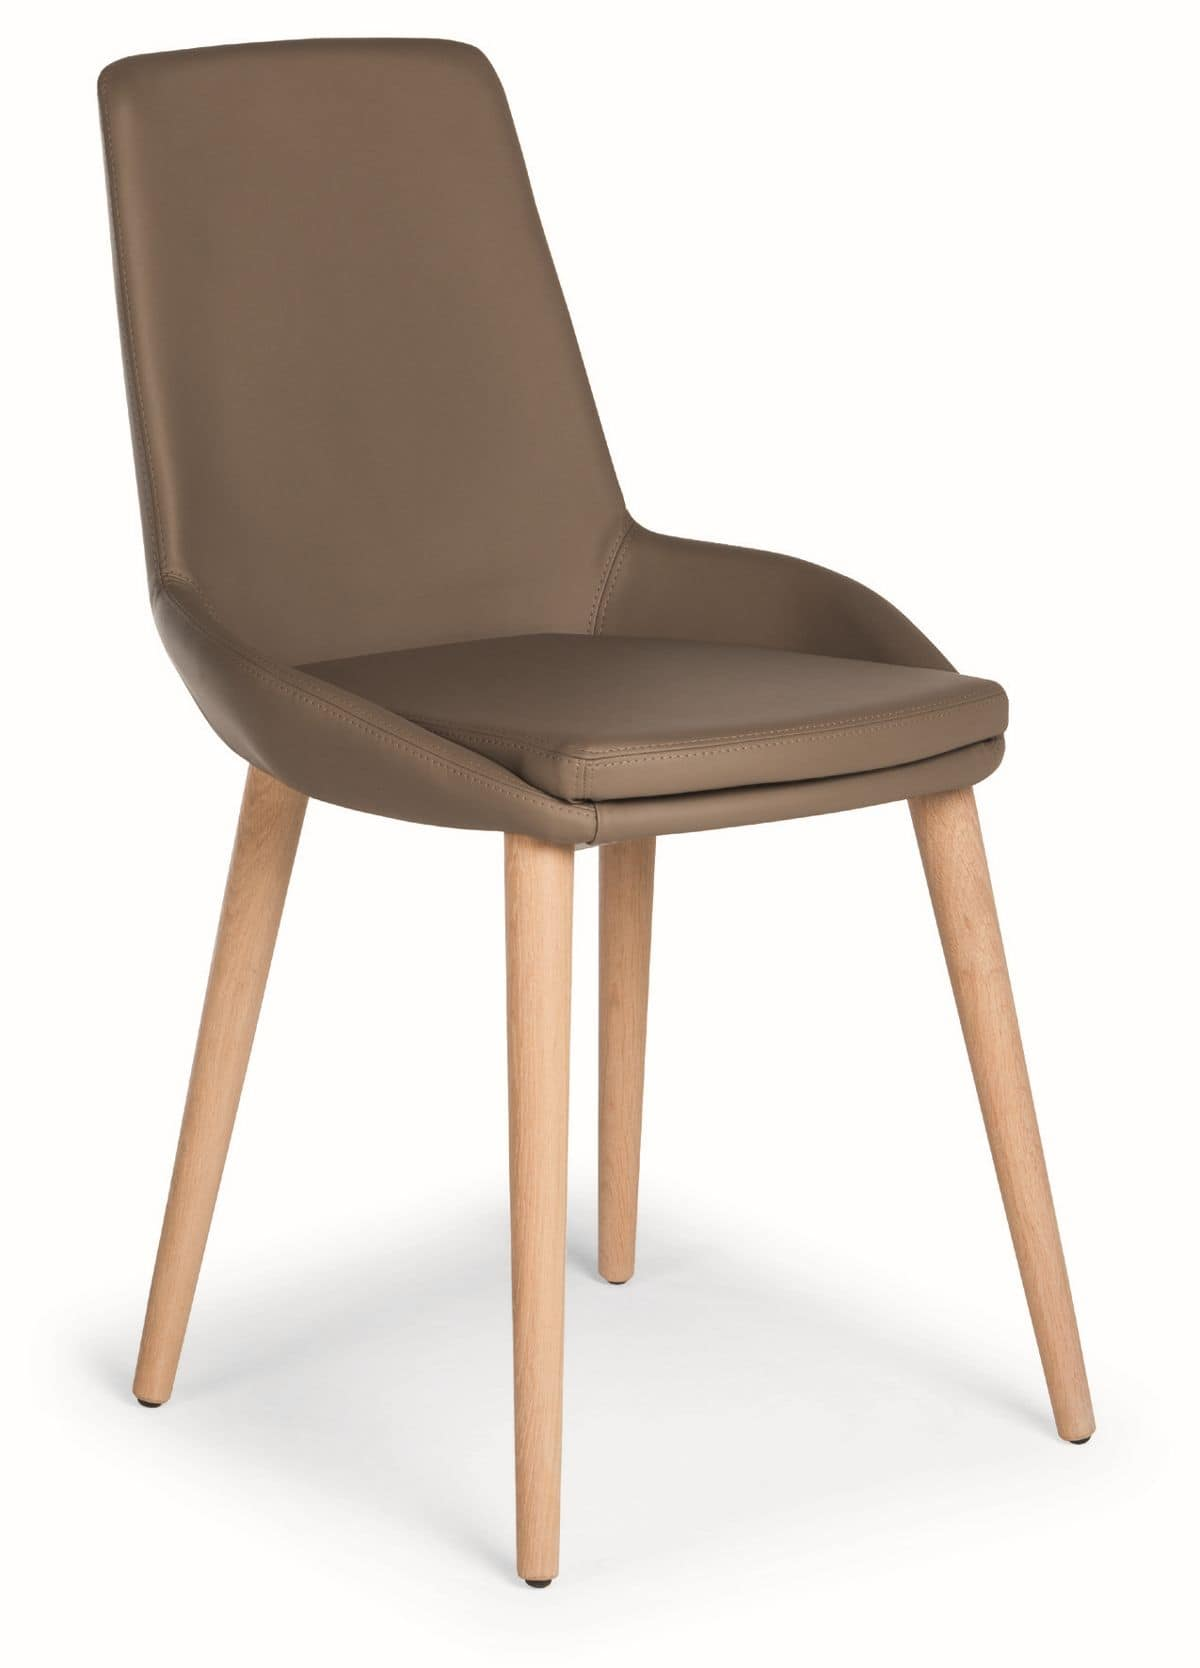 Baxi W, Chair with wooden legs and padded shell